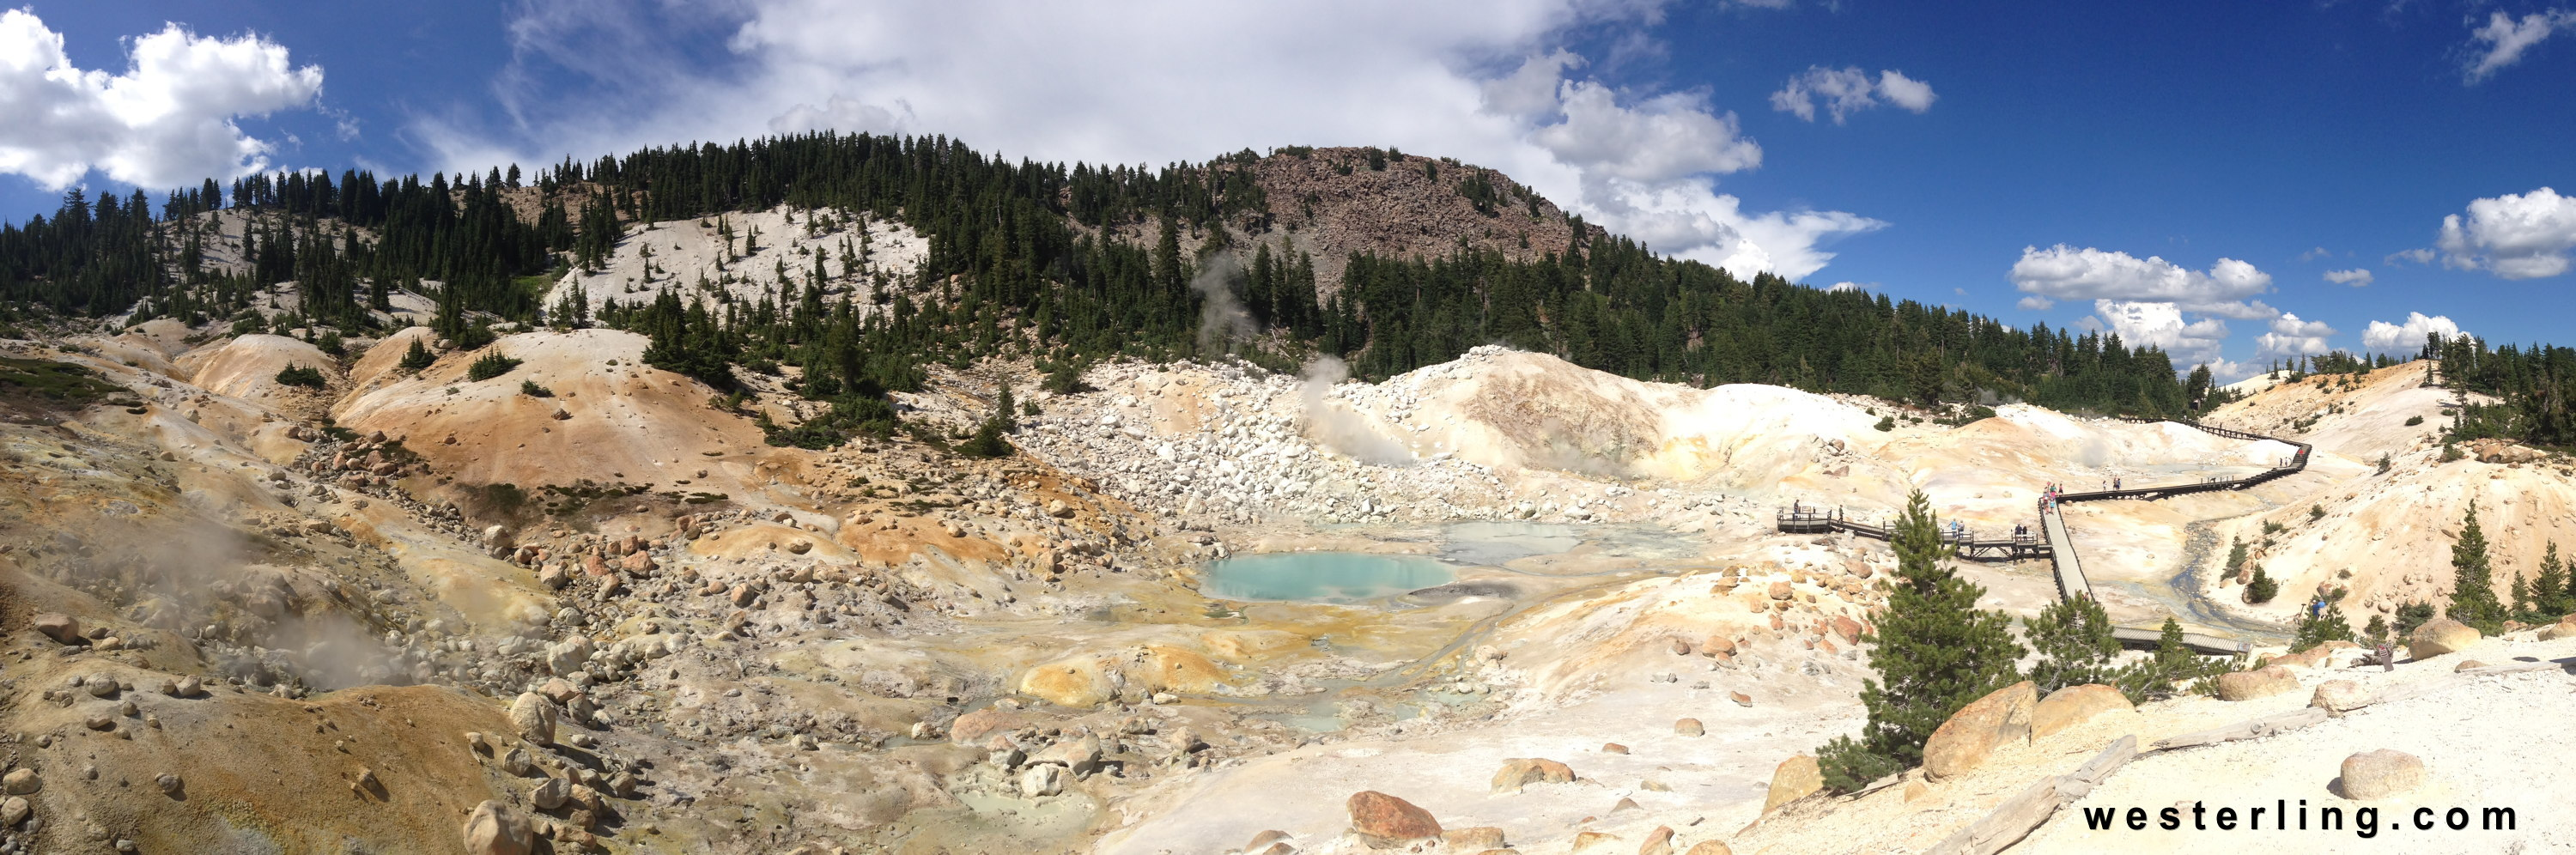 lassen volcanic National Park - Bumpass Hell